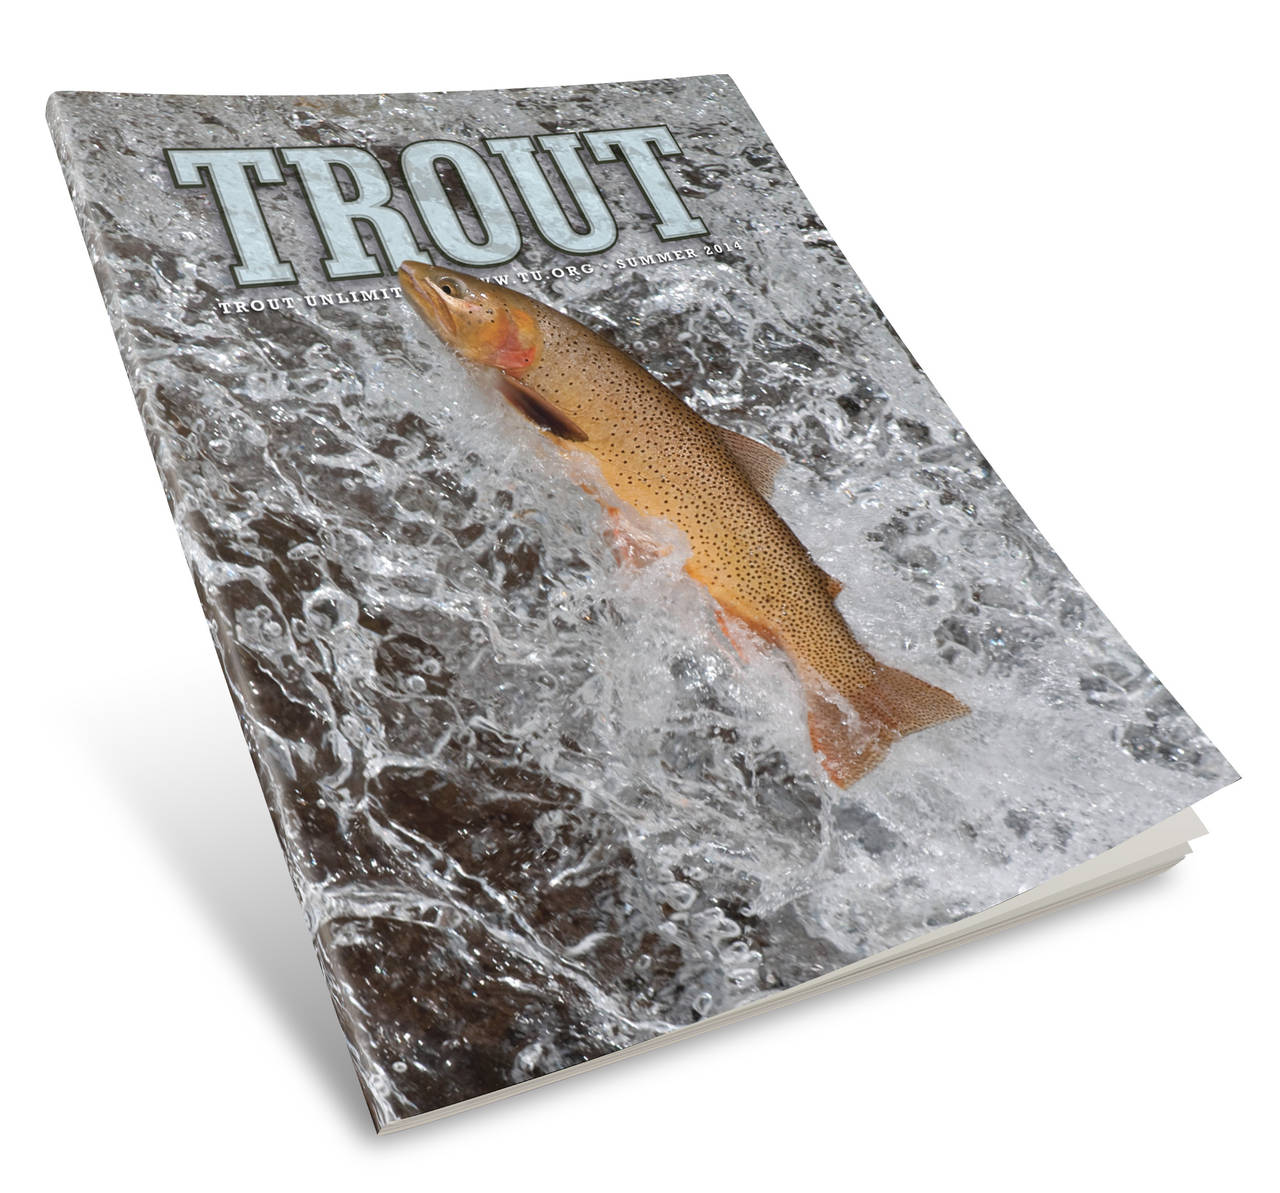 Trout Magazine Cover